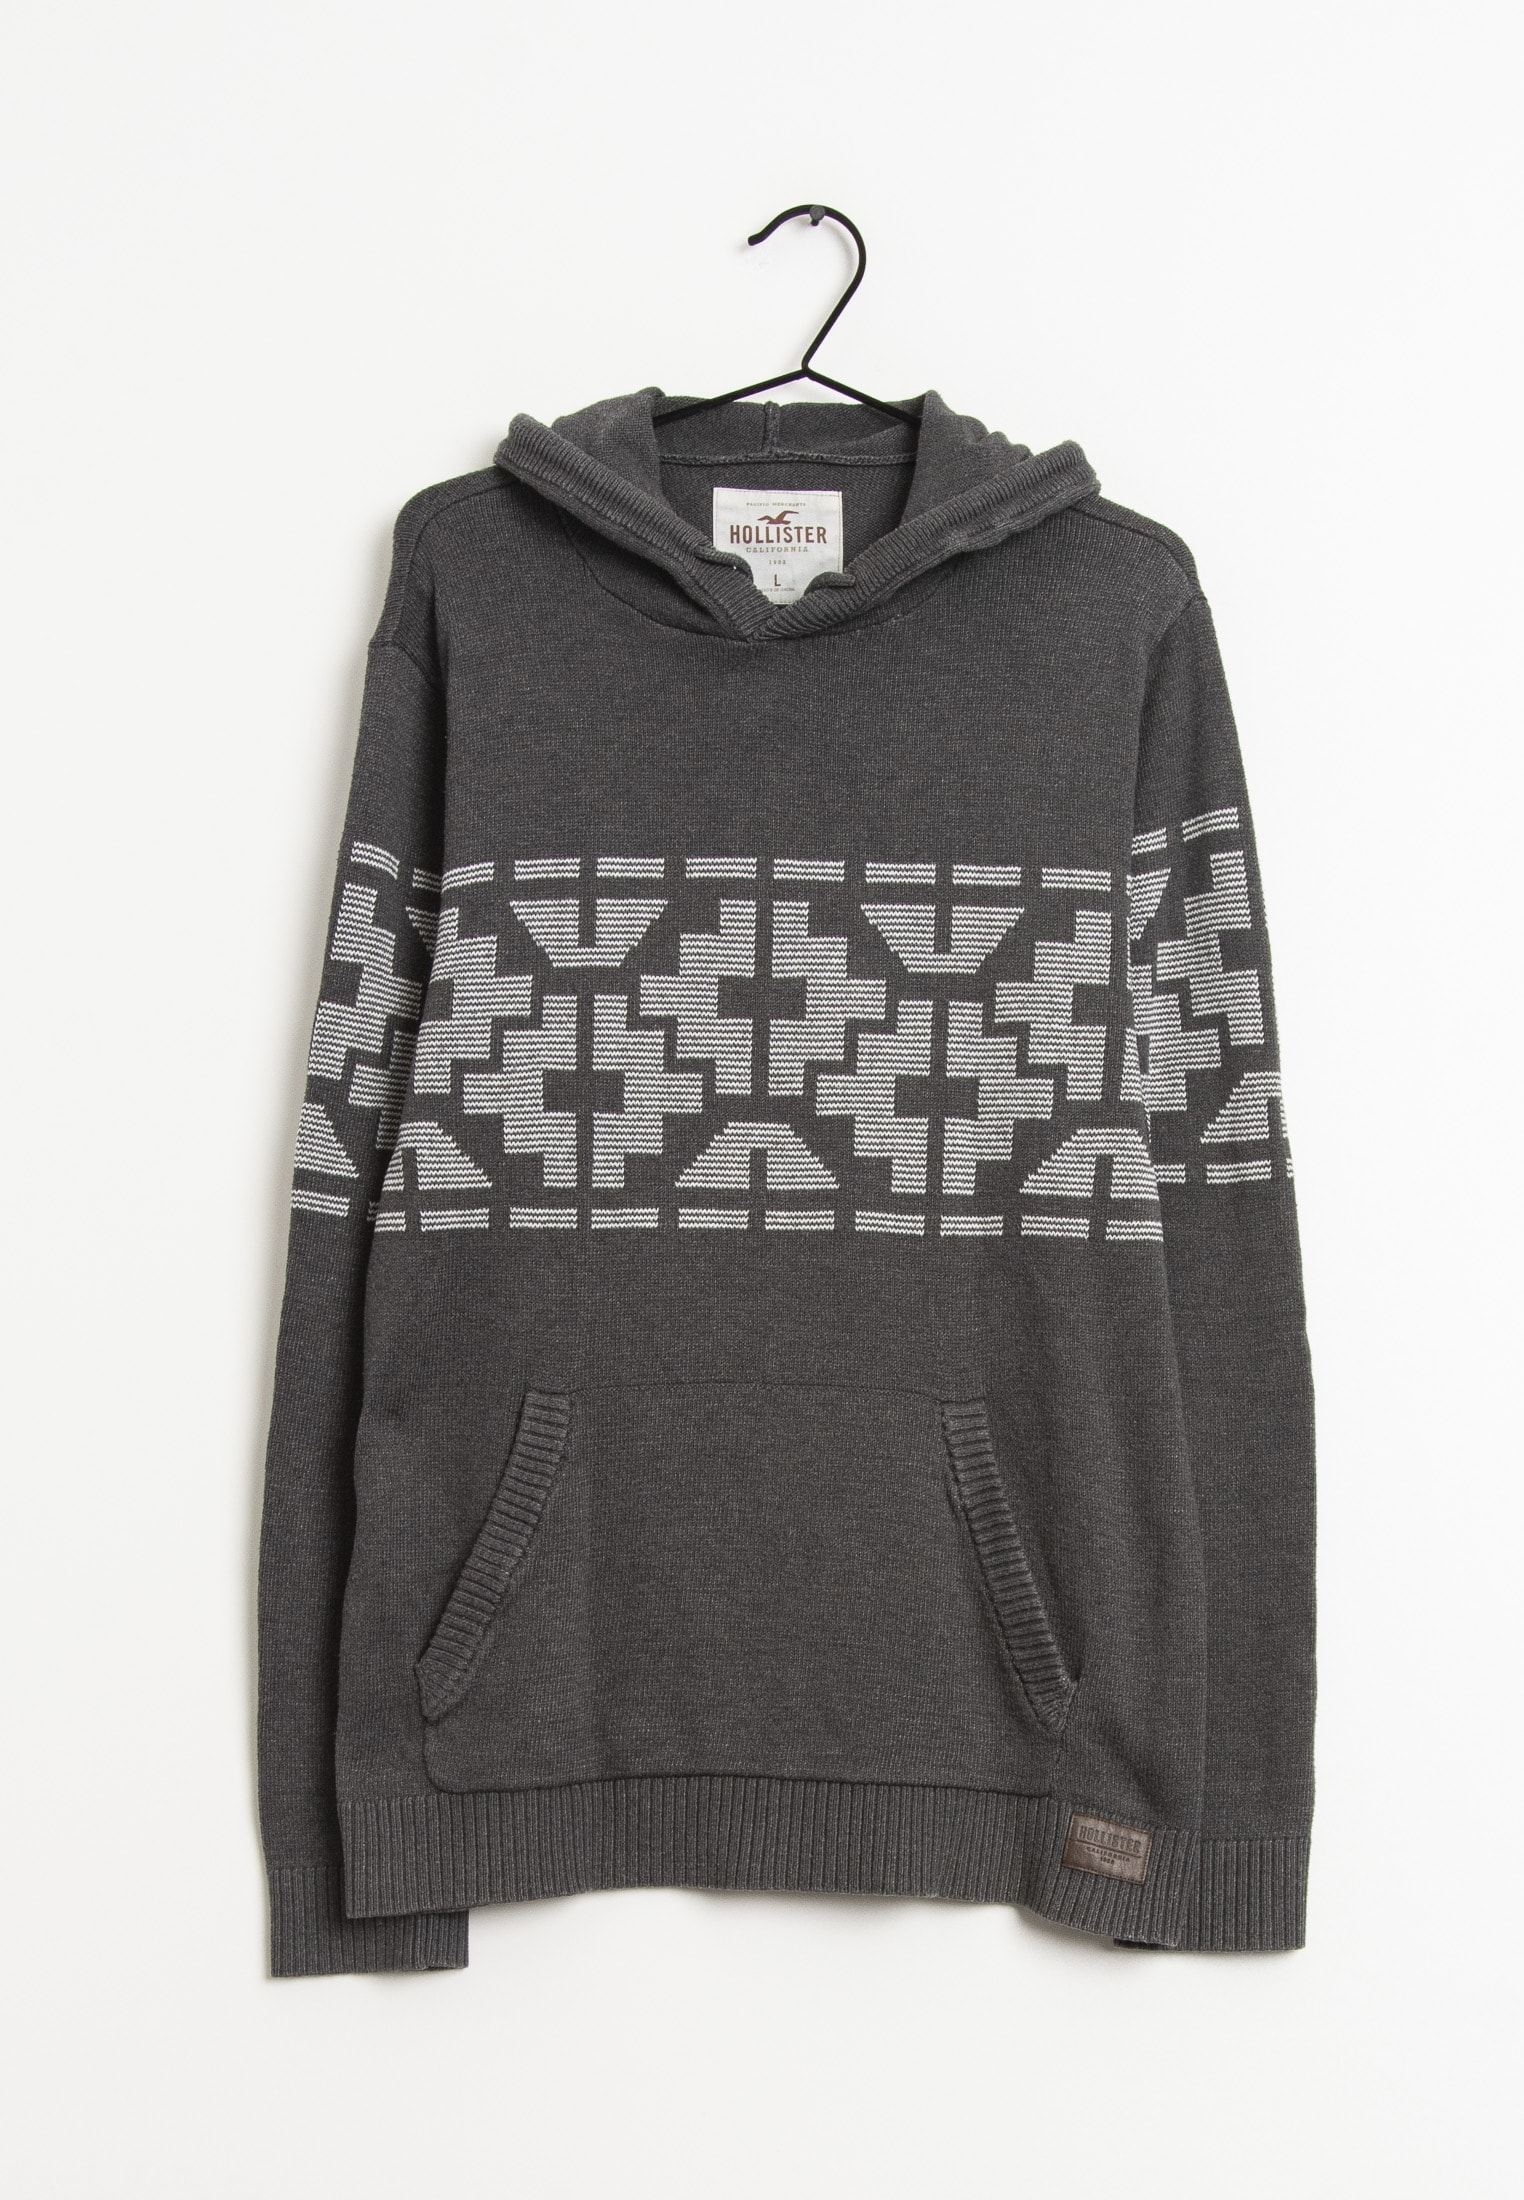 Hollister Co. Strickpullover Grau Gr.L